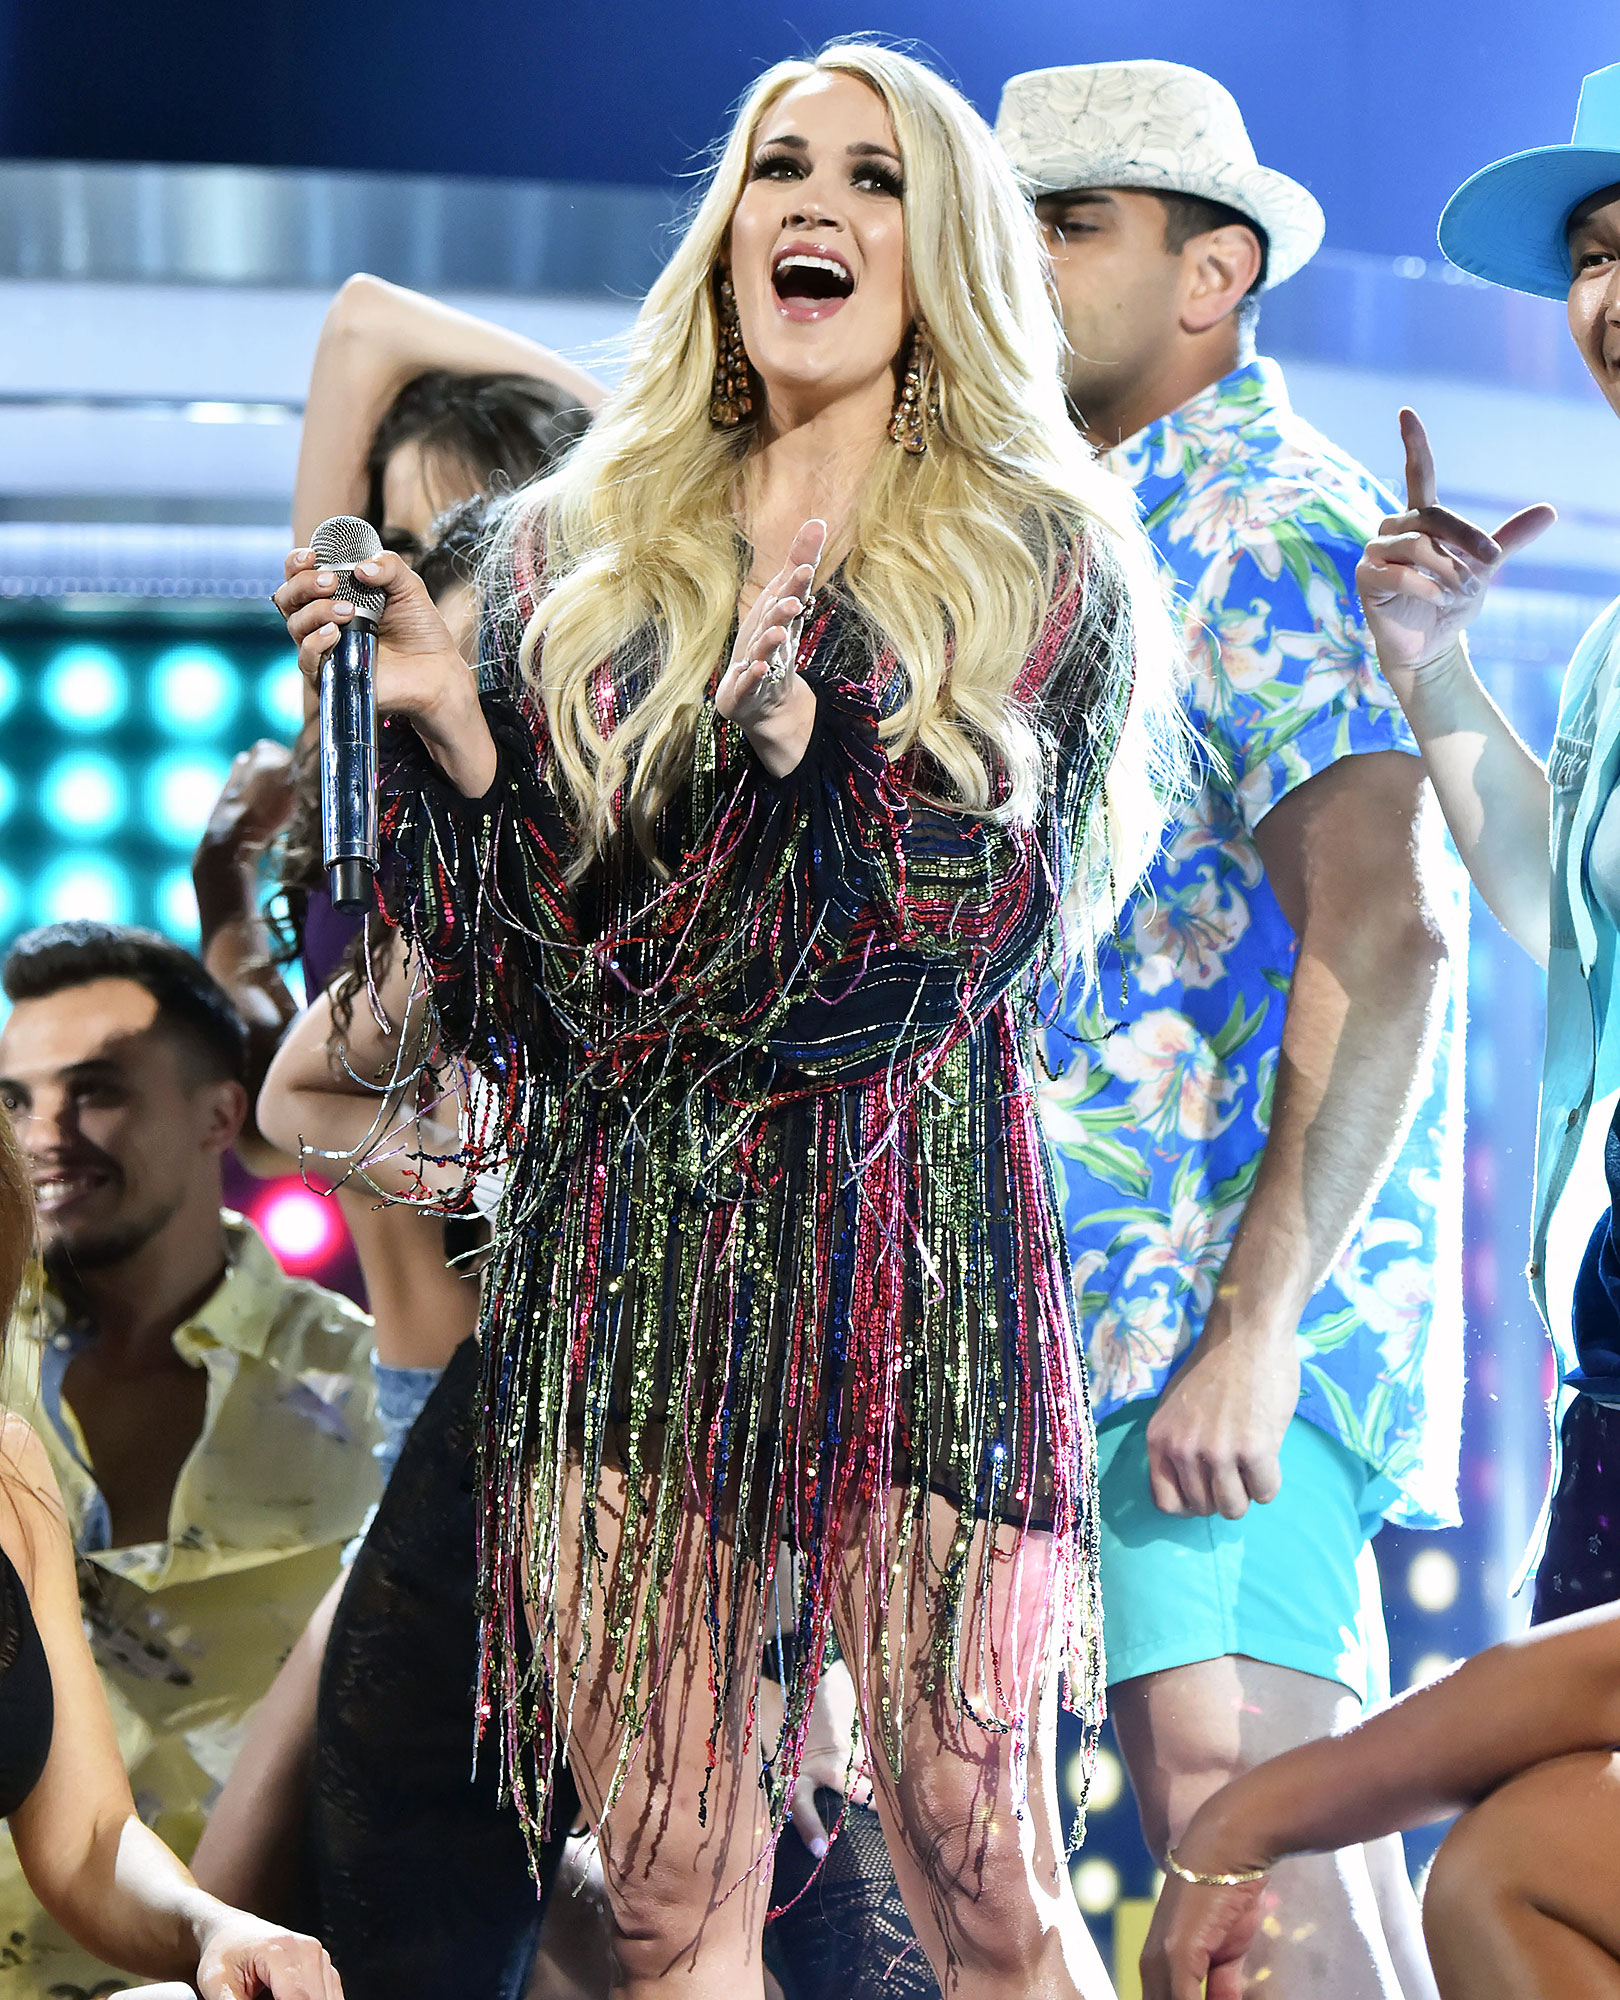 Carrie Underwood Performs After Baby ACM Awards 2019